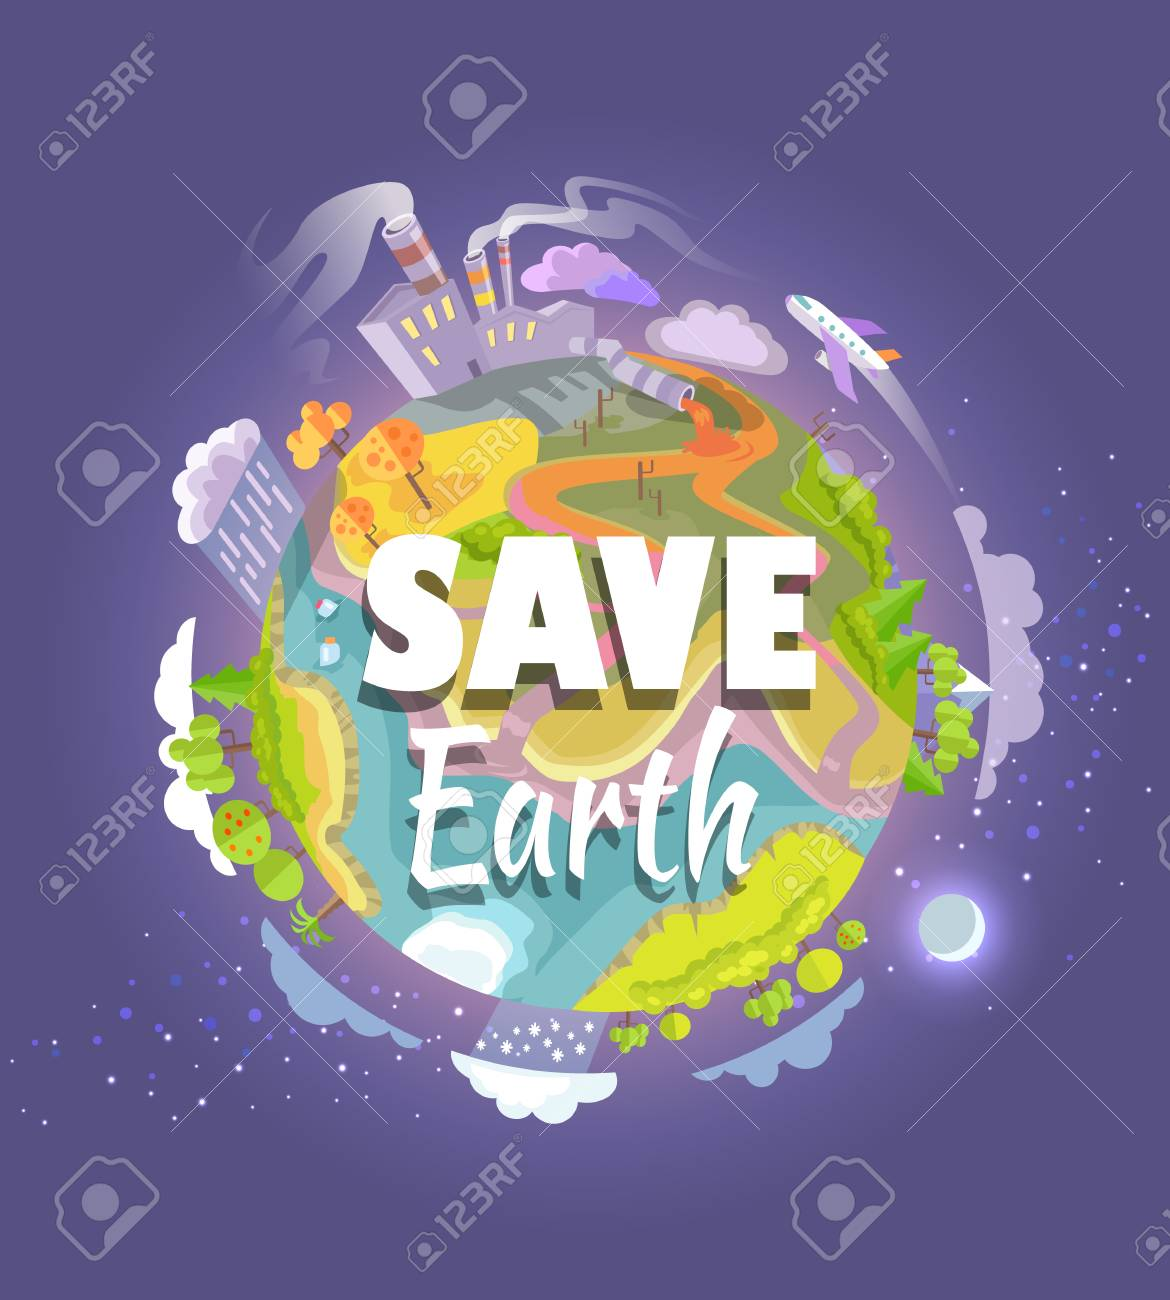 Save Earth Agitation Poster With Planet Space View Royalty Free Cliparts Vectors And Stock Illustration Image 87431016